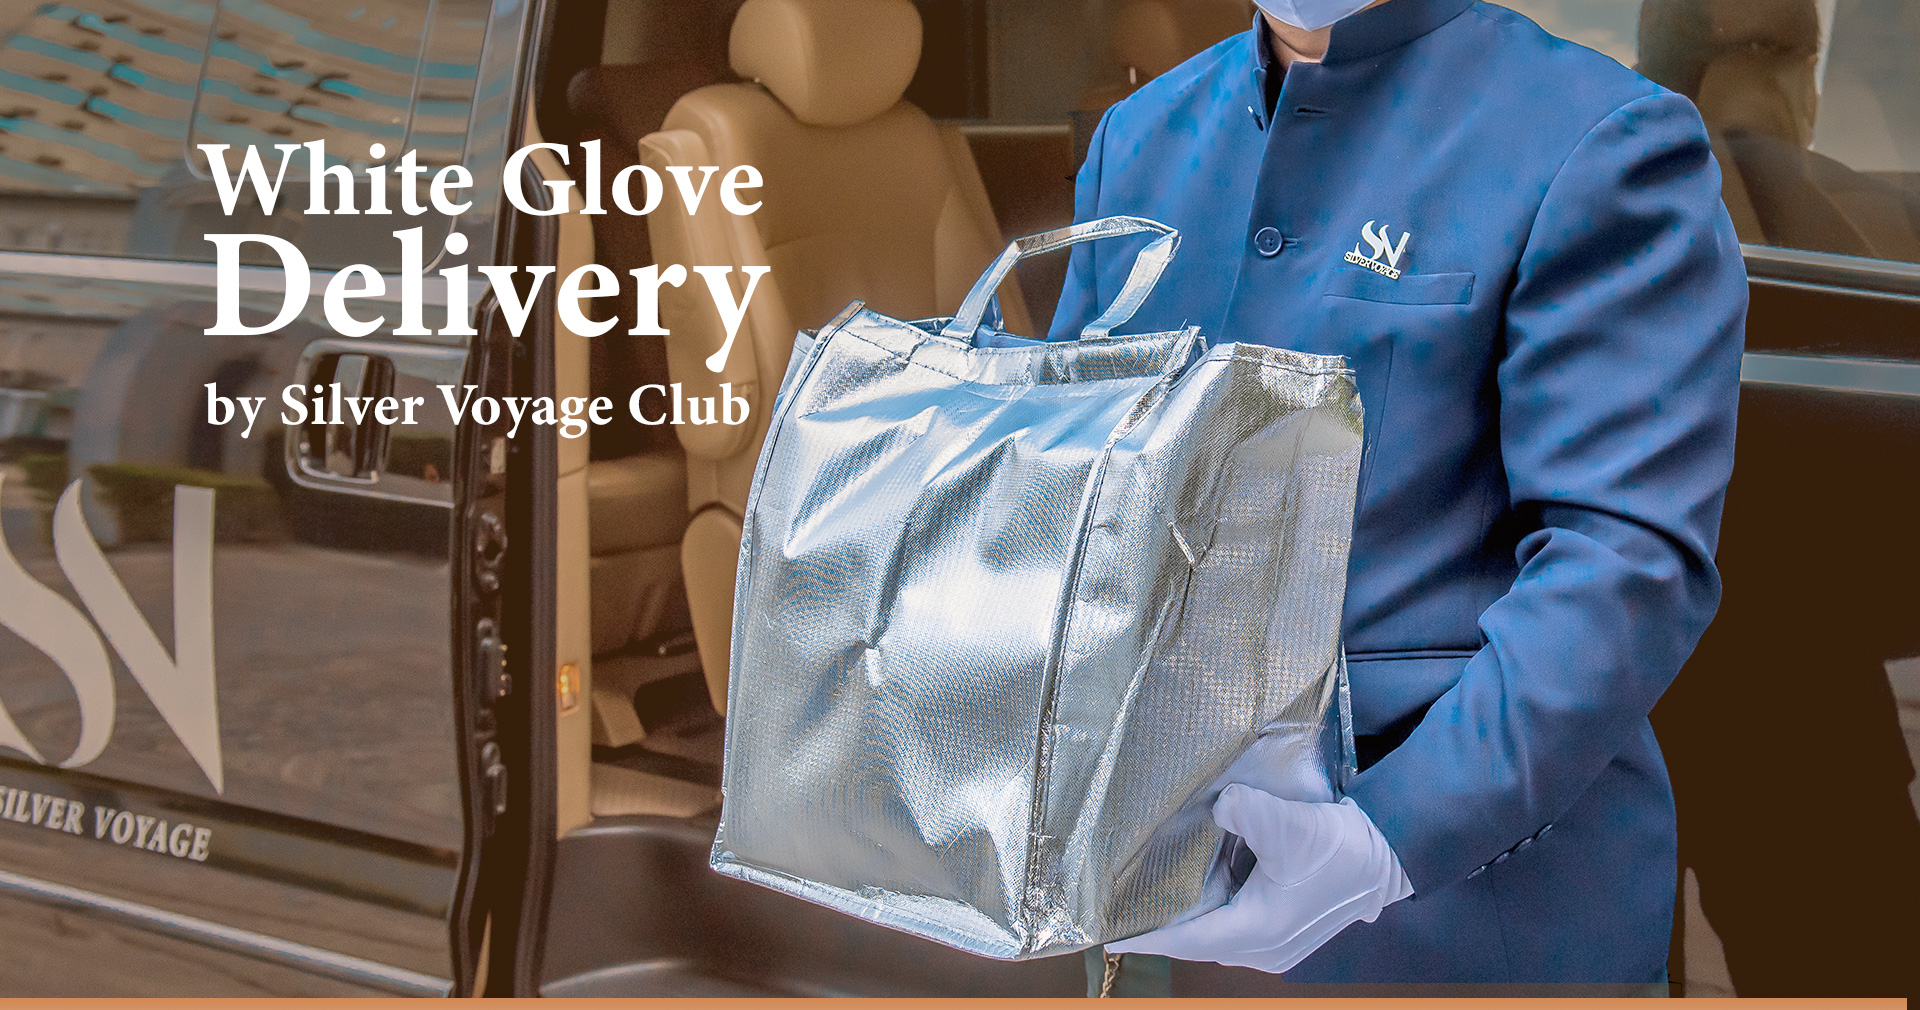 White Glove Delivery by Silver Voyage Club